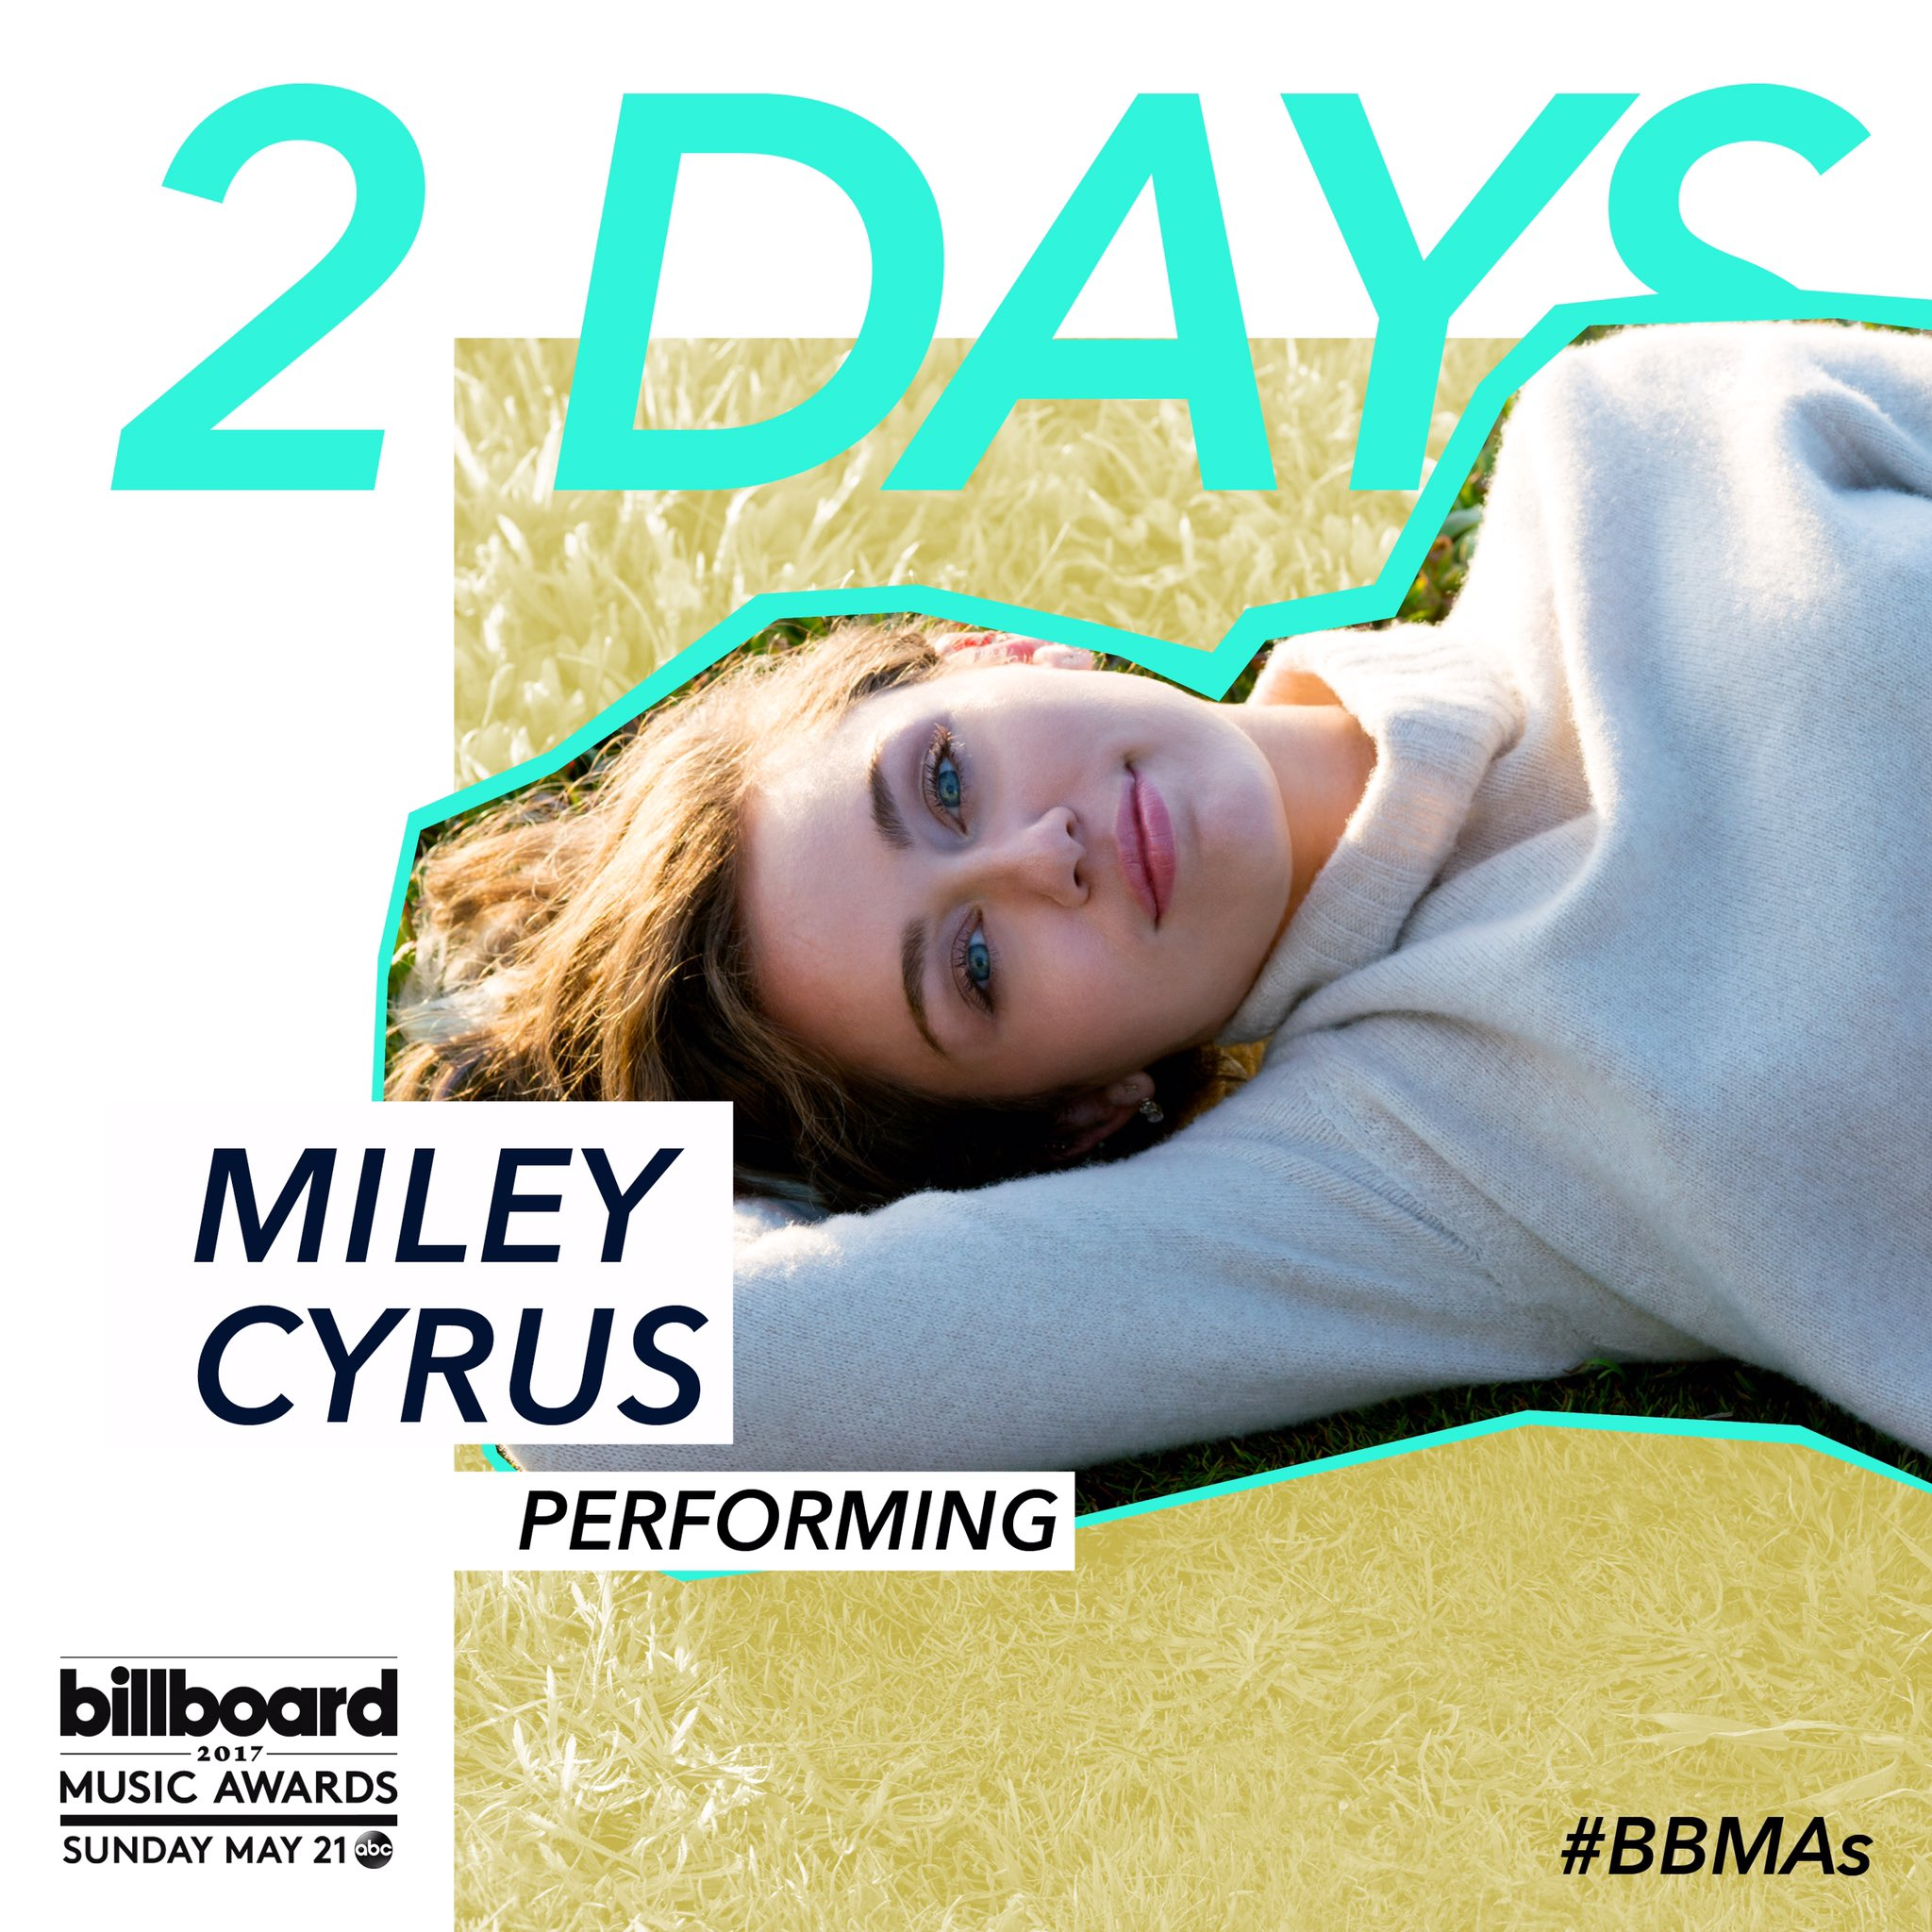 #BBMAs #Malibu �������� Out everywhere! https://t.co/qAciiFlJcg https://t.co/yZEeCPiUoC